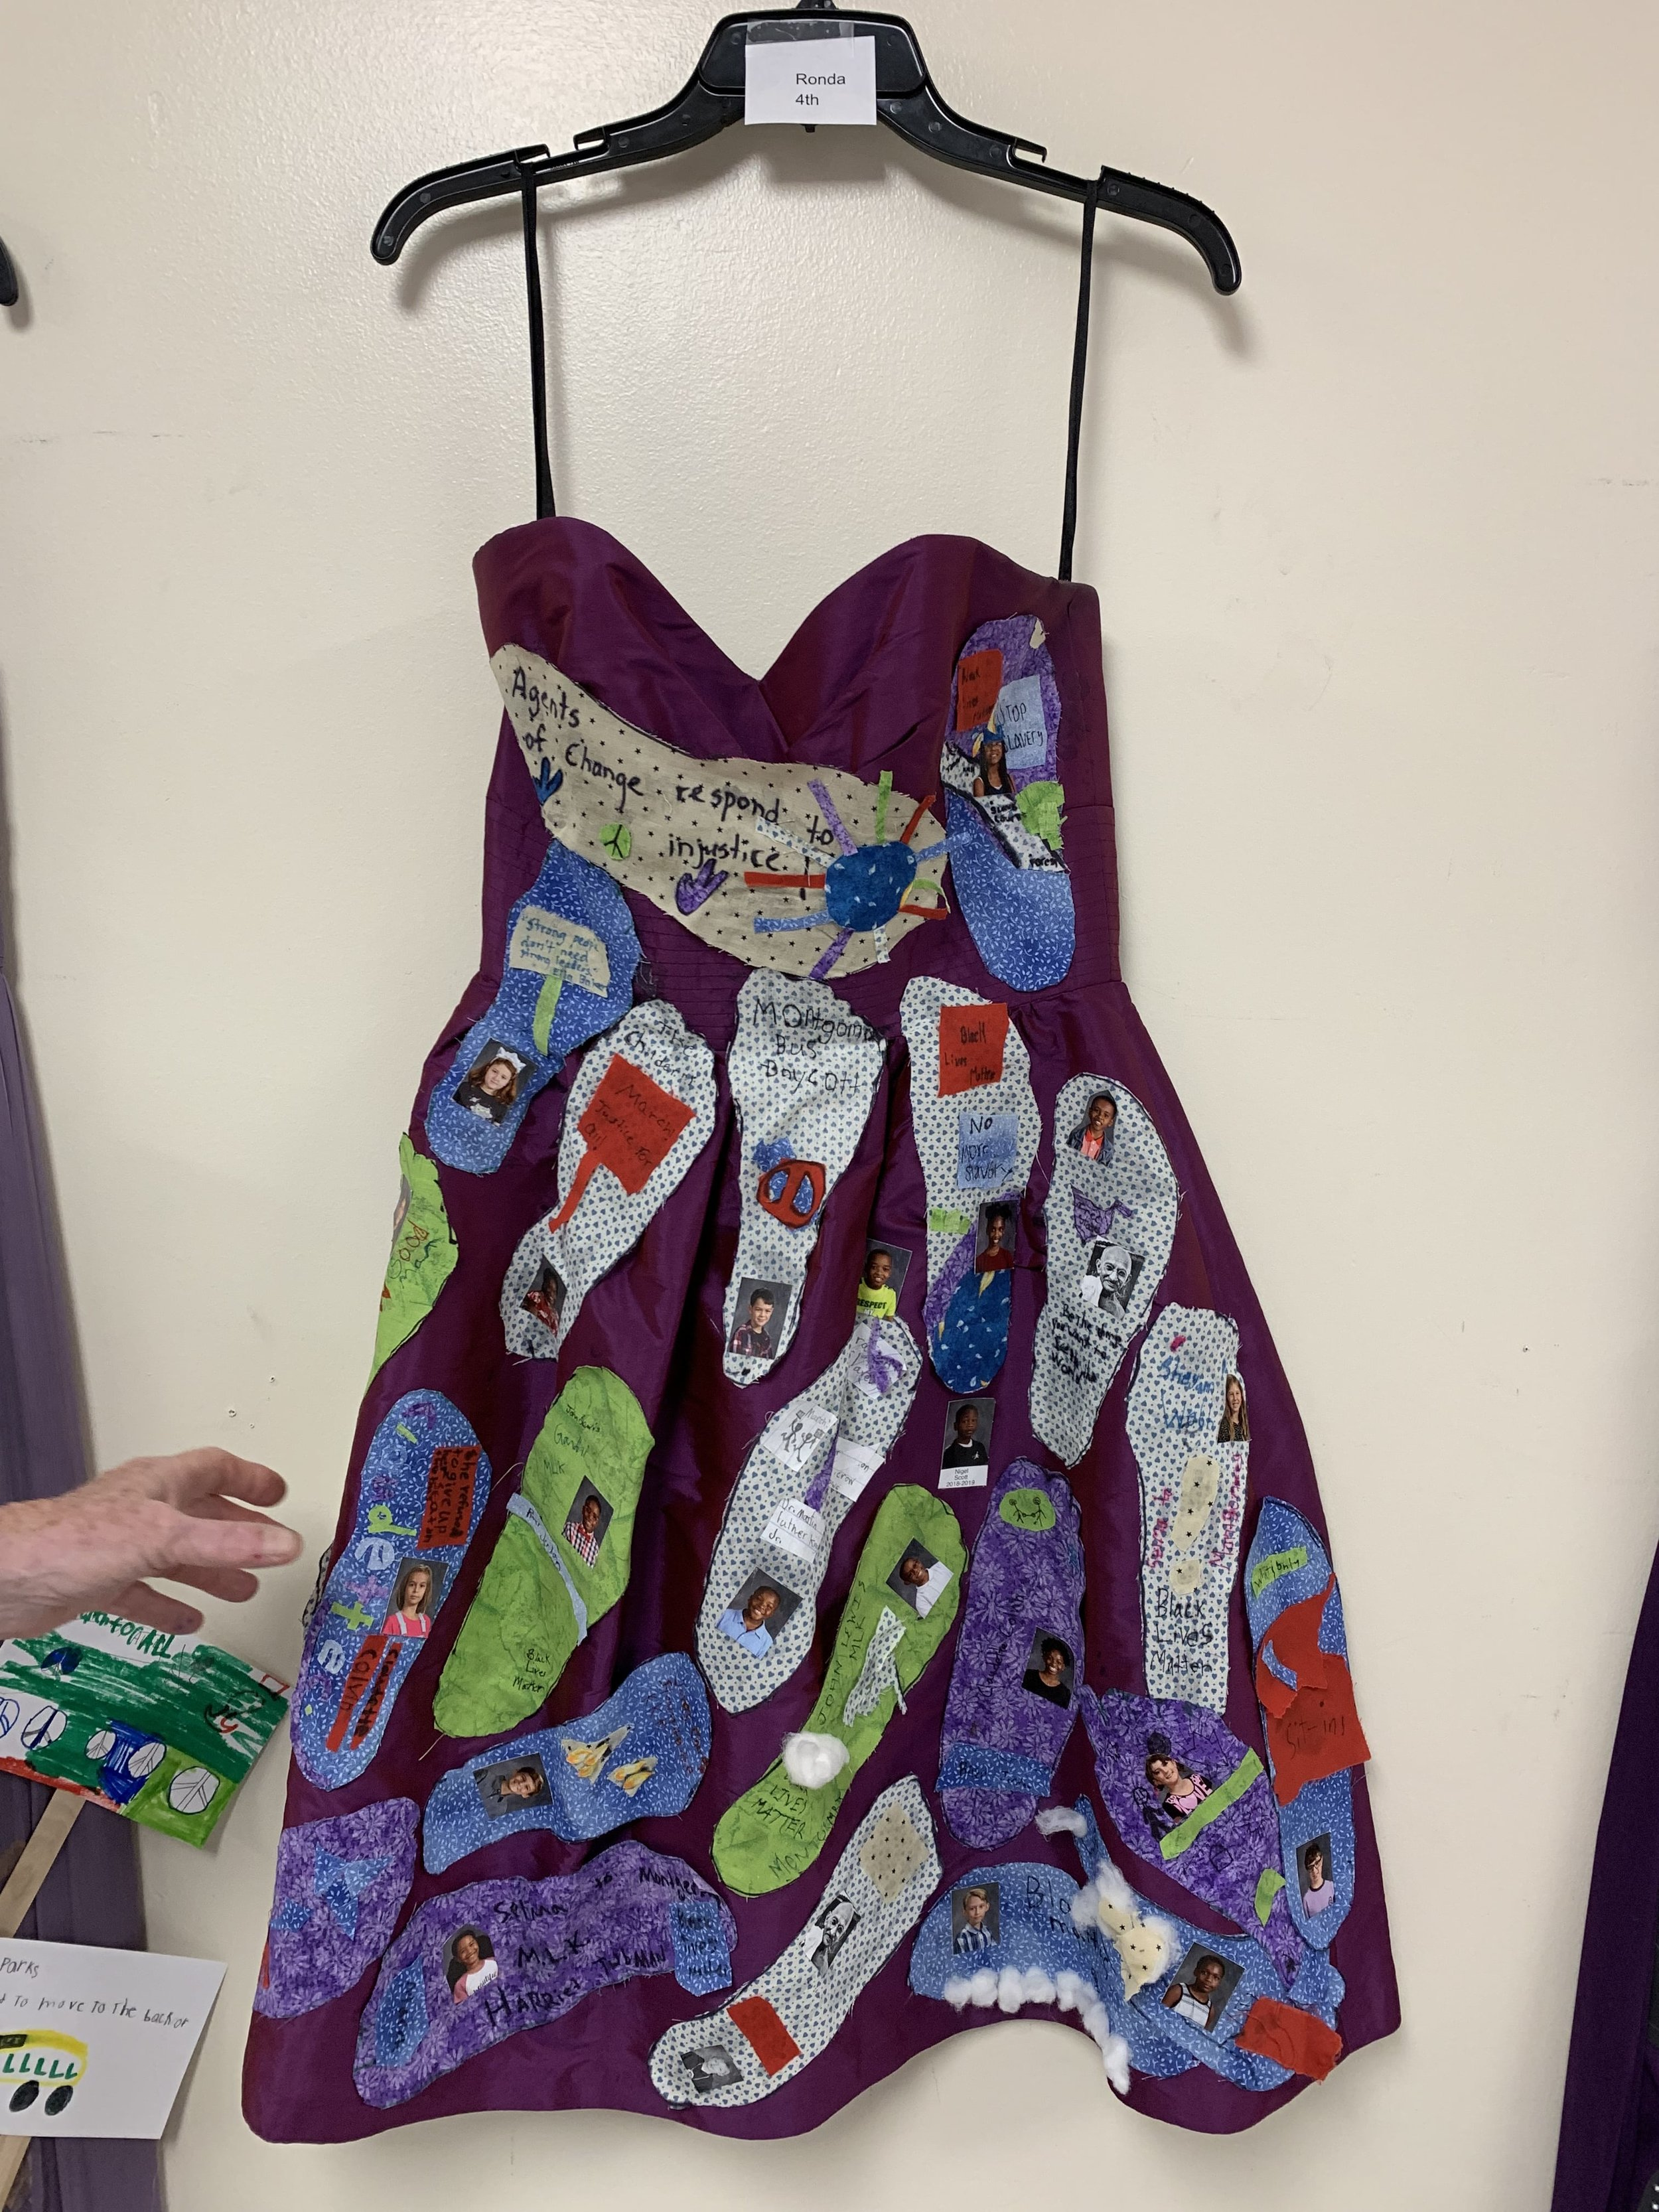 Art celebration by Elementary school students uses donated dresses from Gilded Social